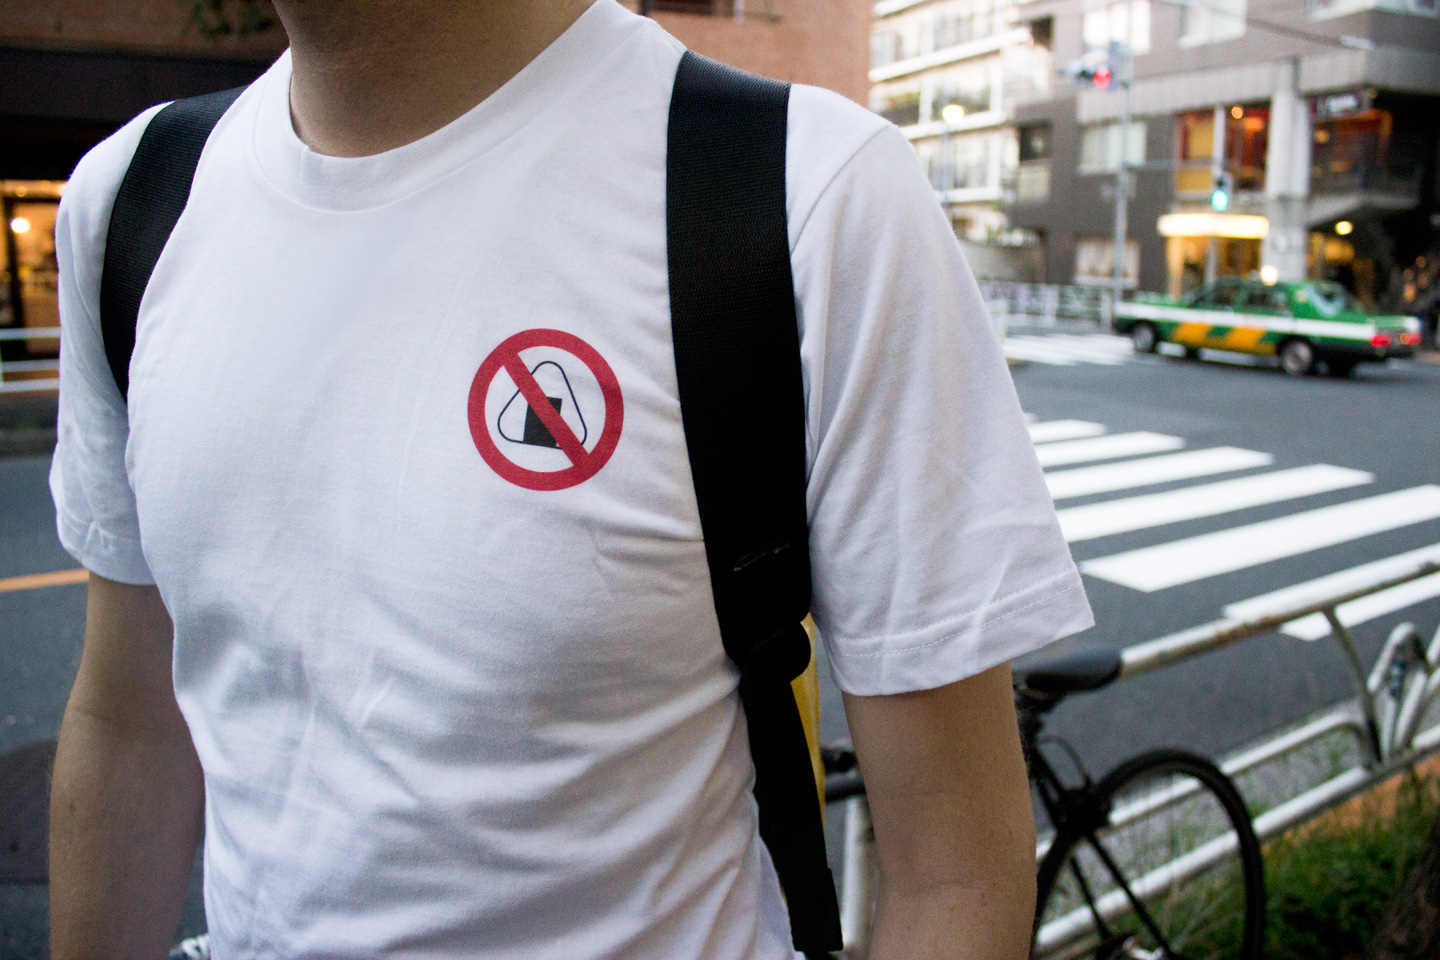 Tokyo Signs™ - Products inspired by the streets of Tokyo - Onigiri Busters T-shirt